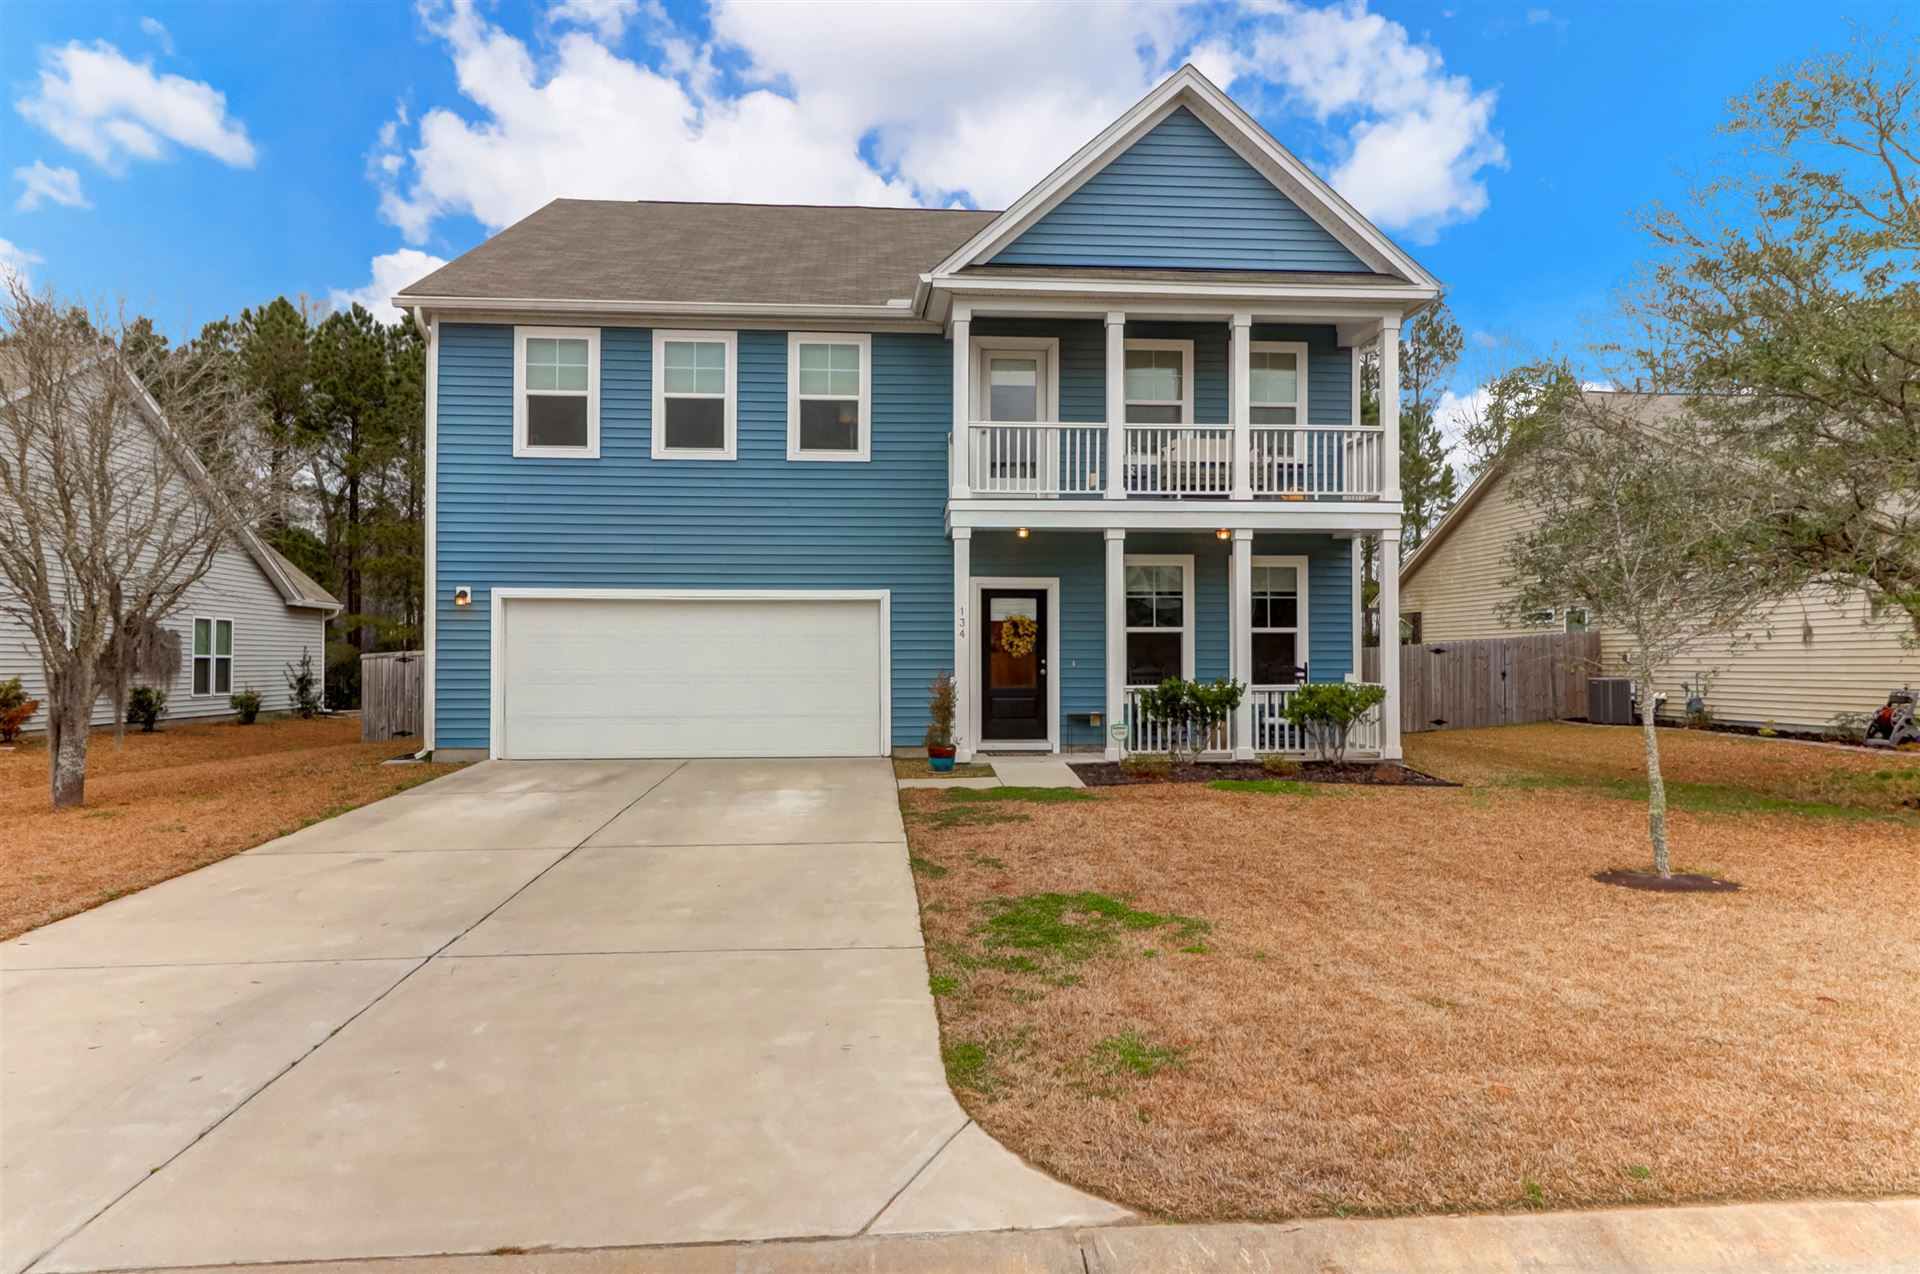 Photo of 134 Cypress Plantation Road, Moncks Corner, SC 29461 (MLS # 21002197)